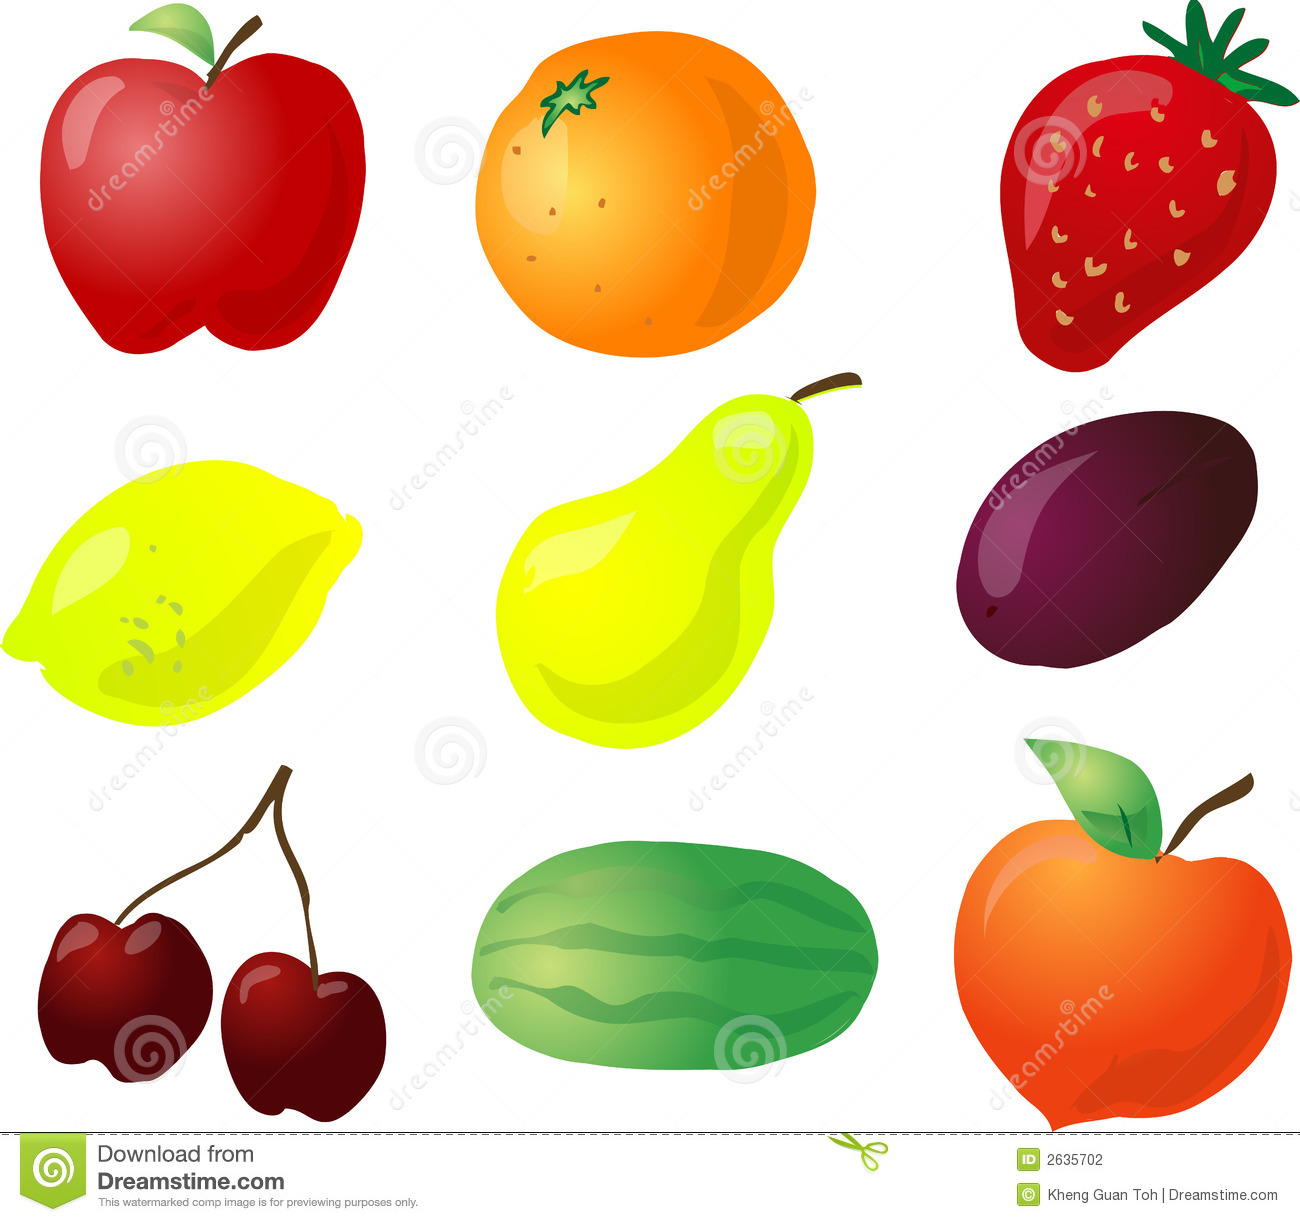 Illustration of fruits, hand-drawn look with no lines: apple, orange ...